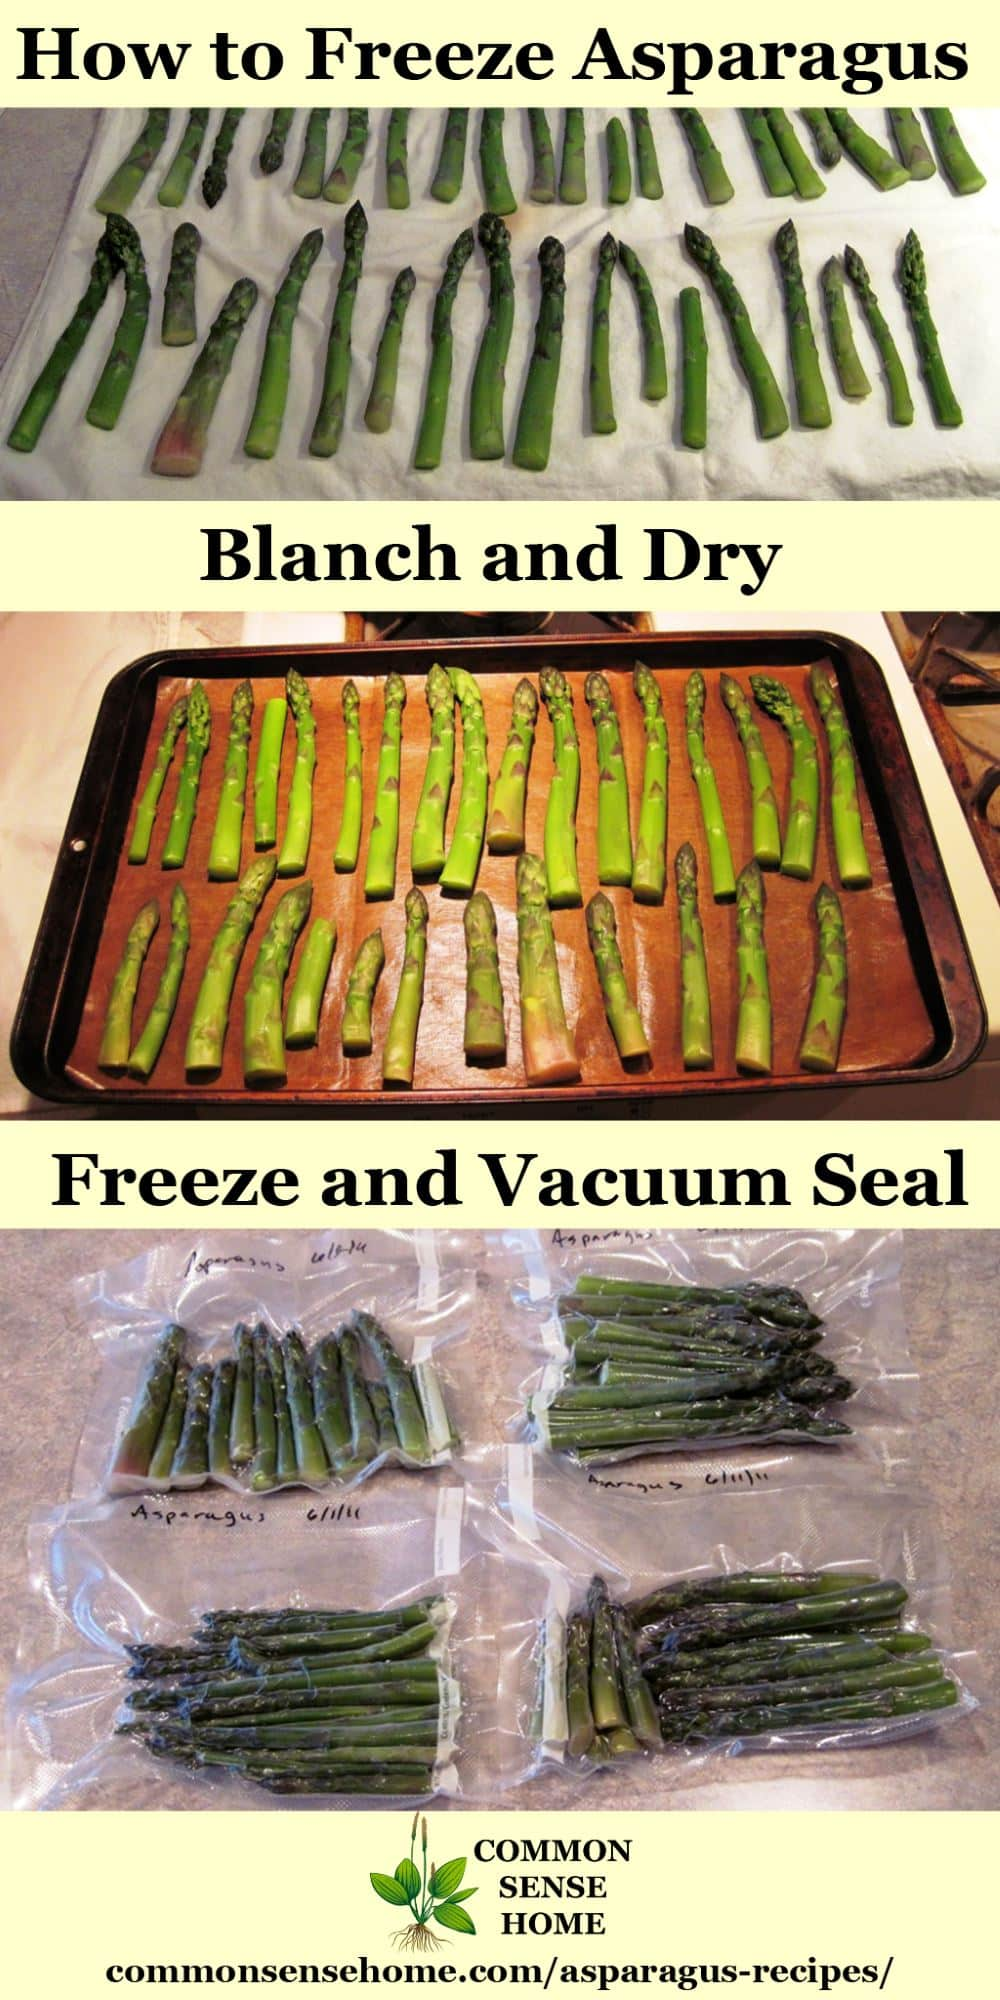 Asparagus freezing process